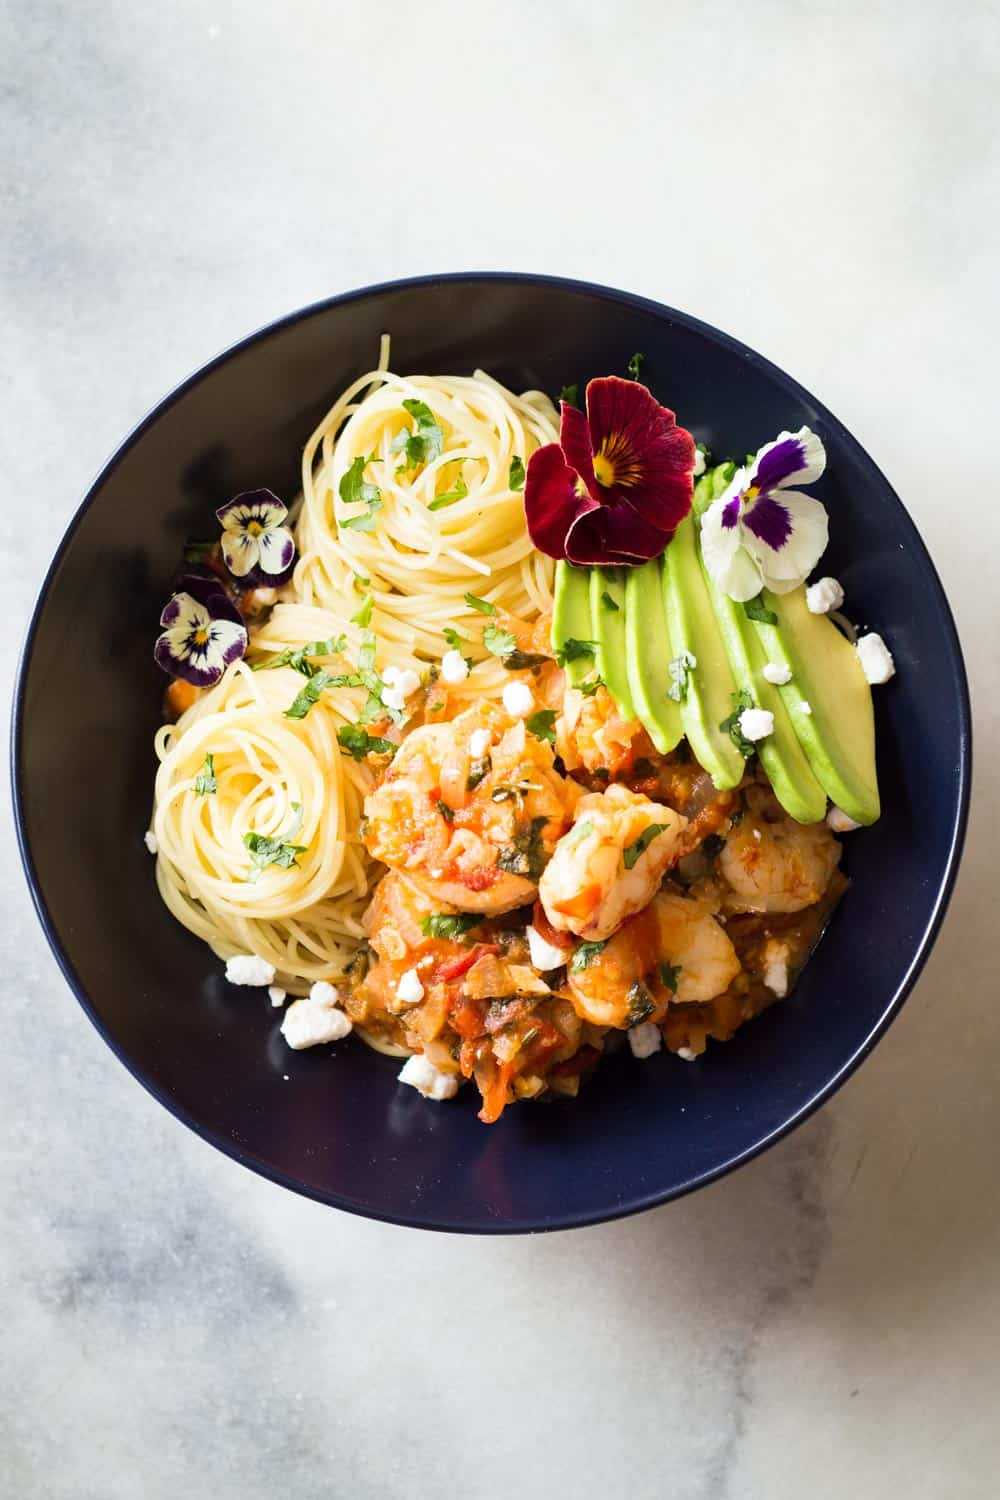 Top view of Mexican-Style Shrimp Capellini Pasta in a black bowl decorated with fresh flowers.